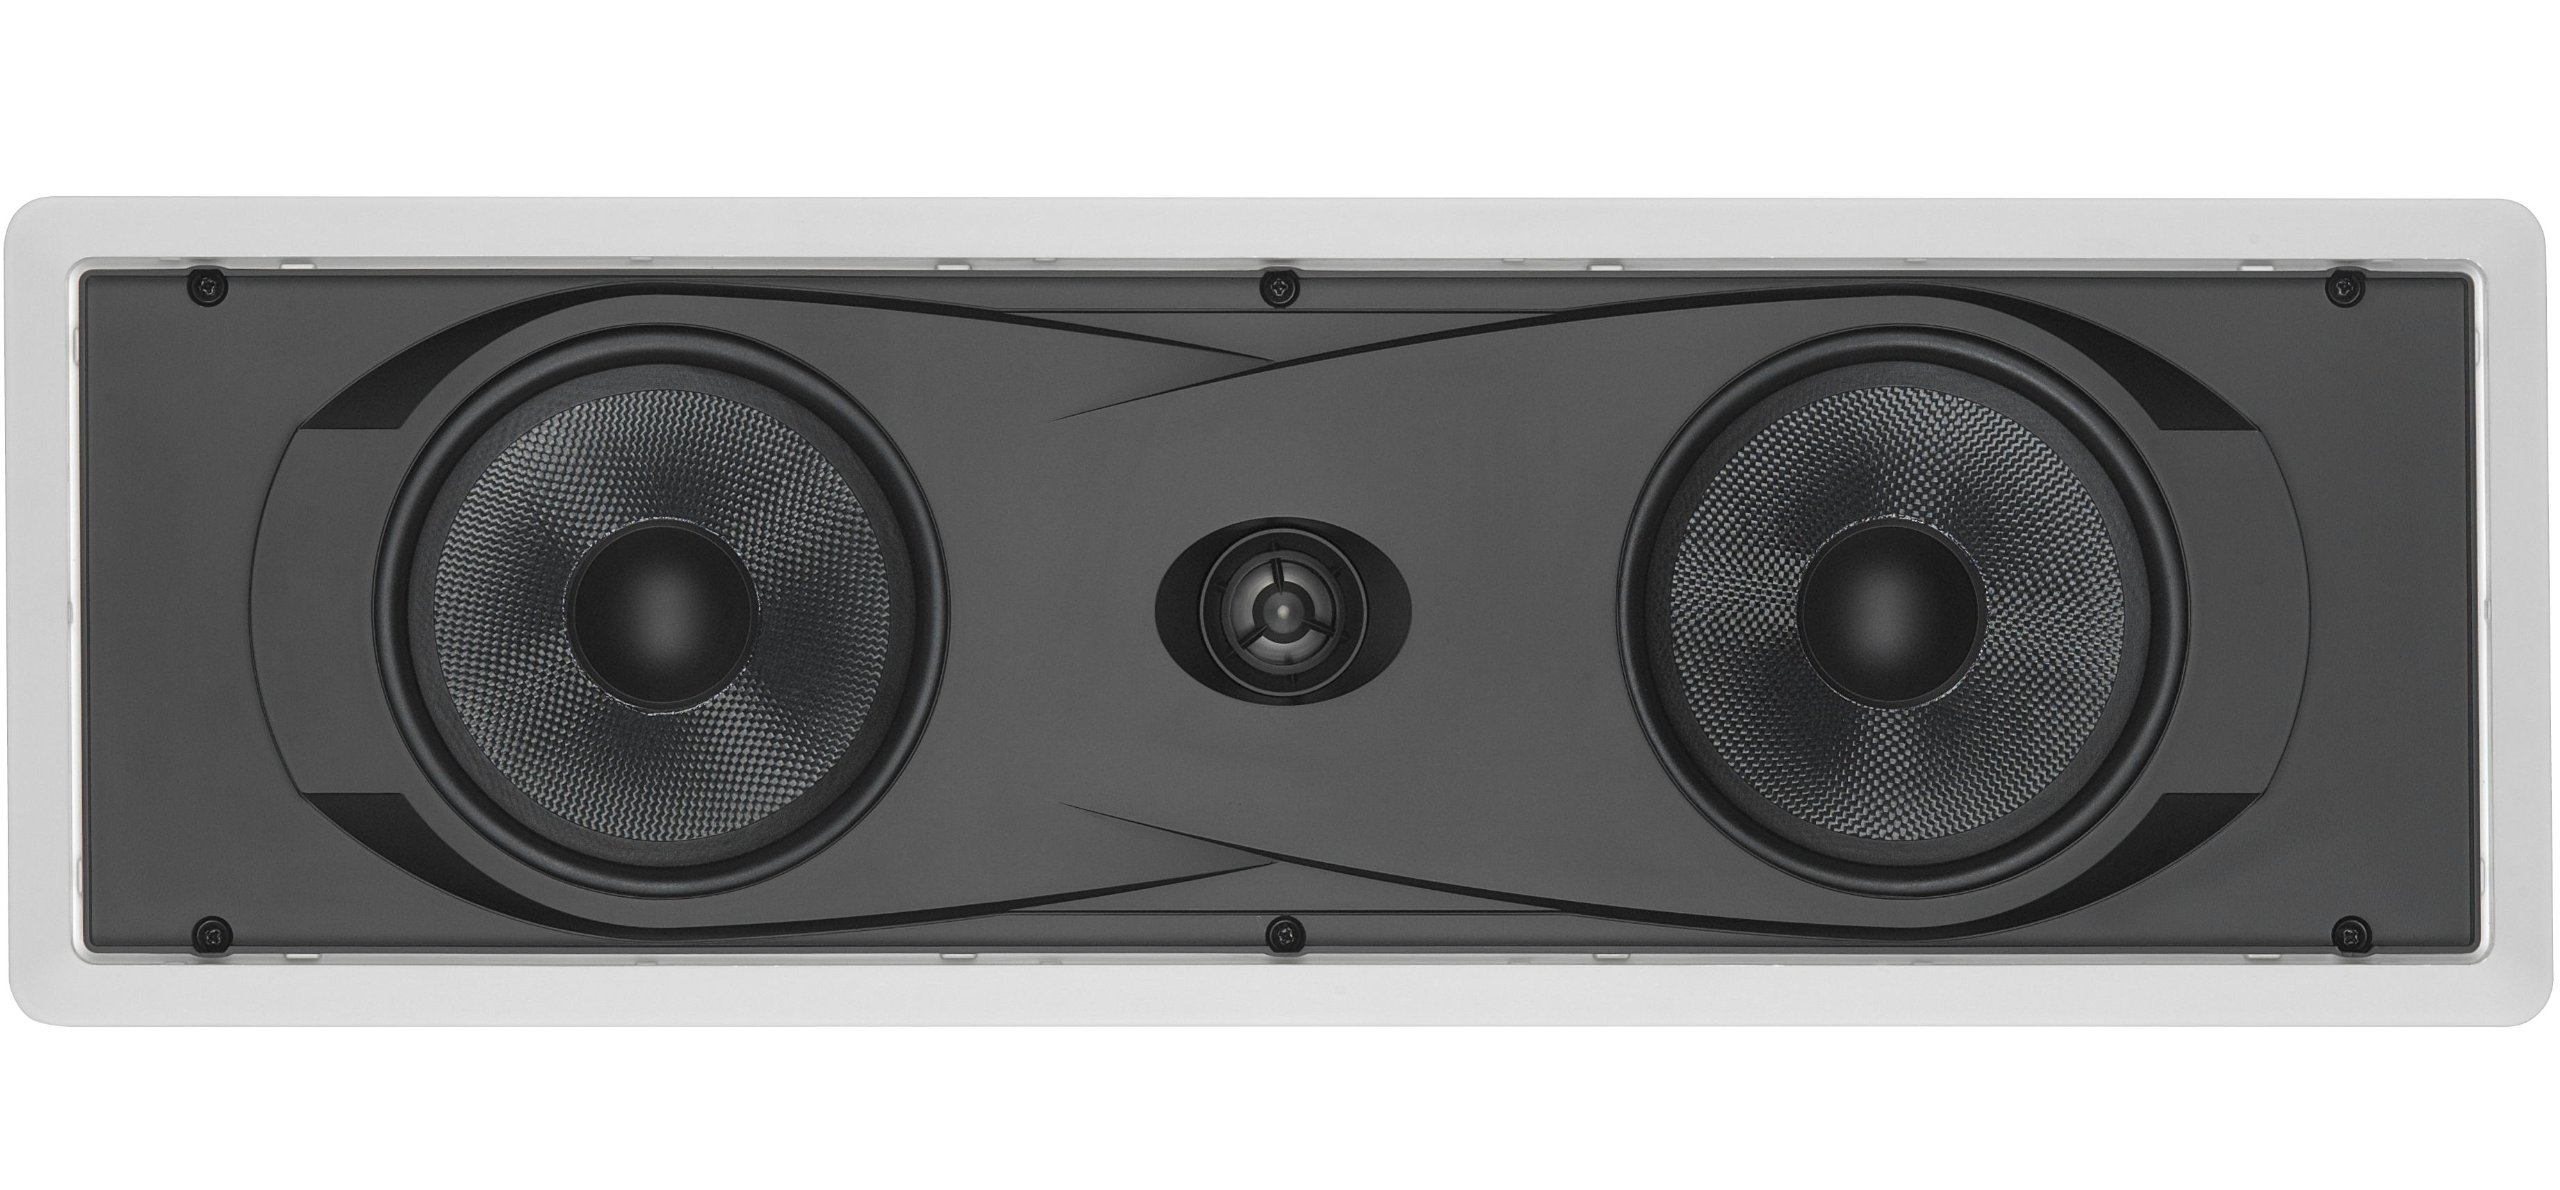 Yamaha In-Wall 150 watts Natural Sound 2-Way Speaker with 1'' Titanium Dome Swivel Tweeter & Dual 6-1/2'' Kevlar Cone Woofers for Enhanced Center Channel, Plasma LCD Big Screen TV or any Home Theater System by Yamaha